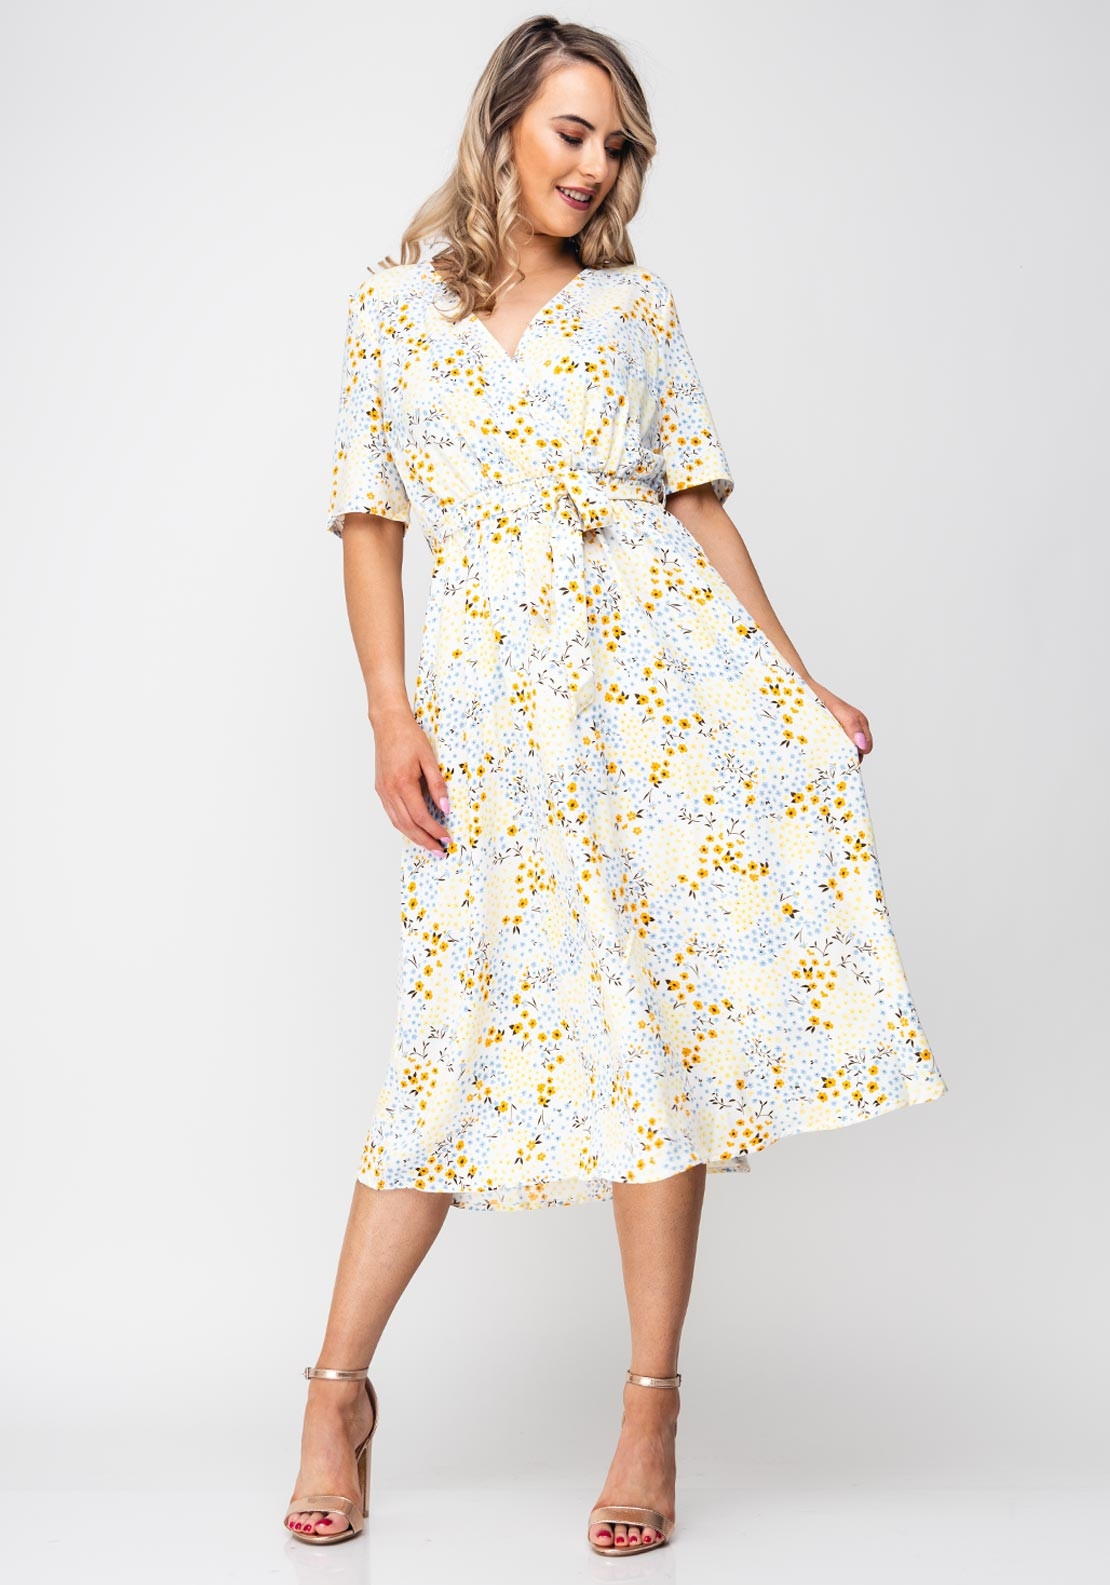 56cf64a70 Vilaia Primrose Floral Wrap Midi Dress, White. Be the first to review this  product